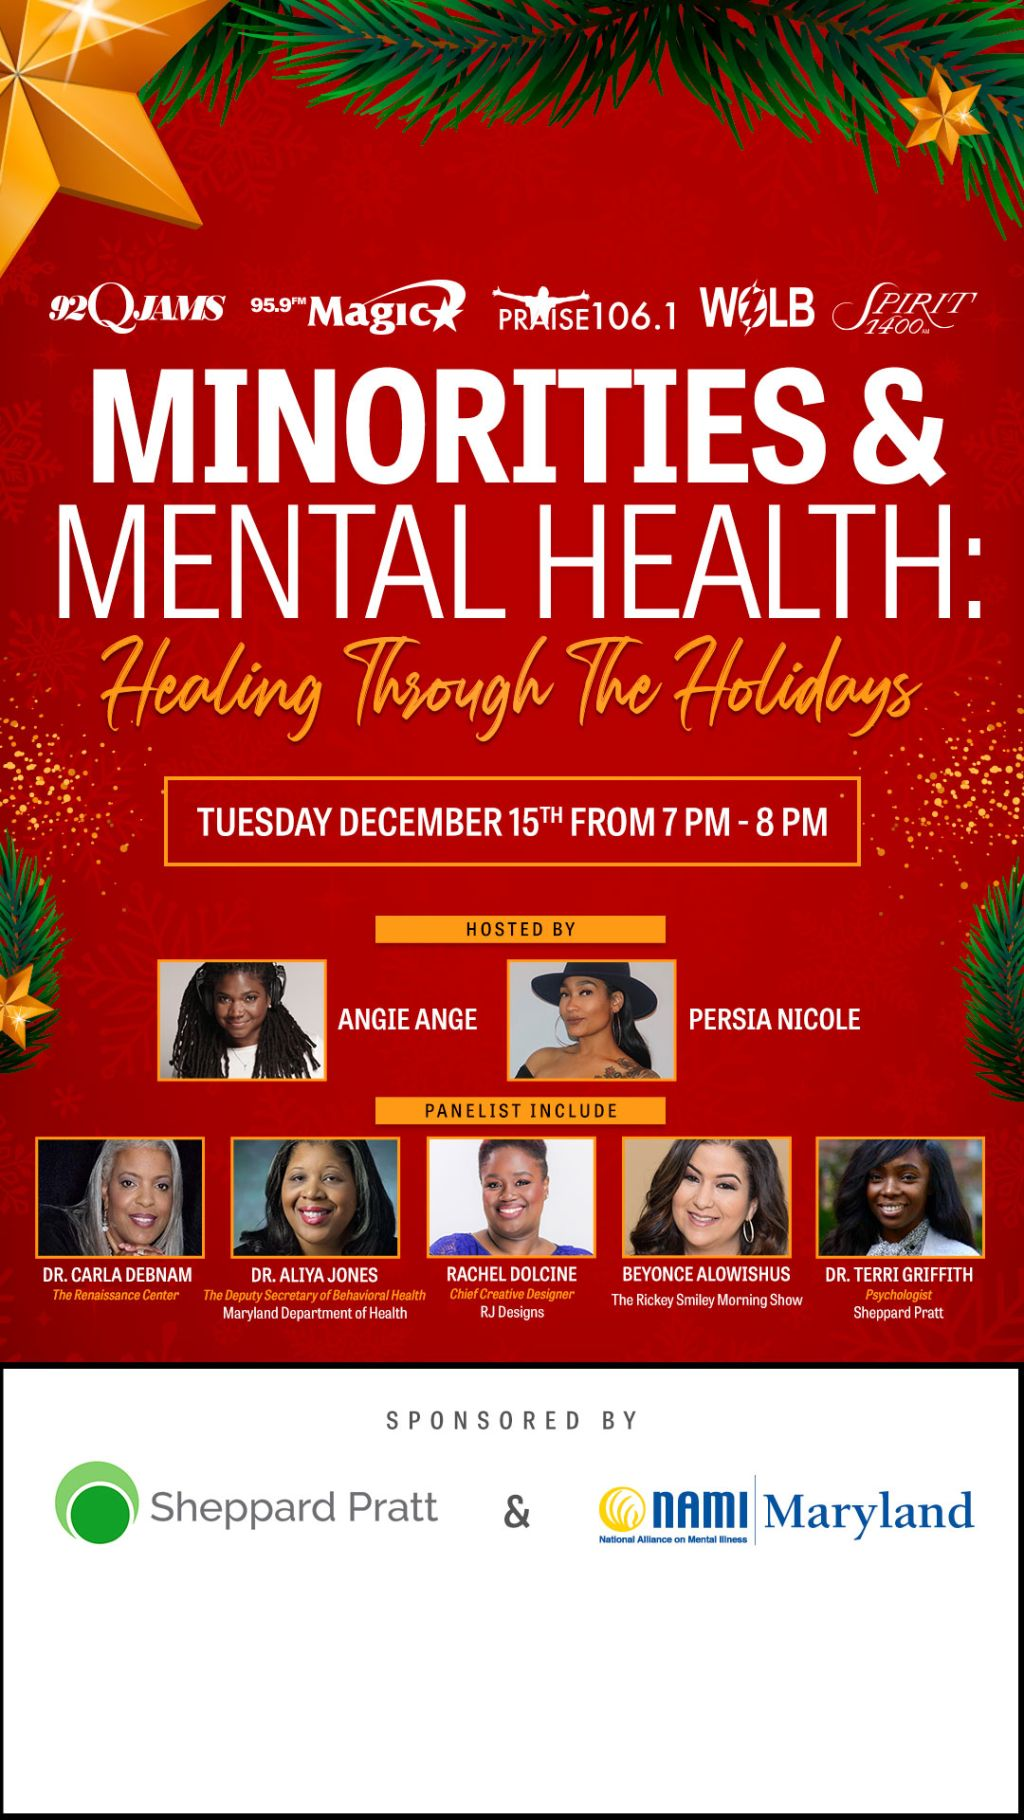 Minorities & Mental Health: Healing Through The Holidays